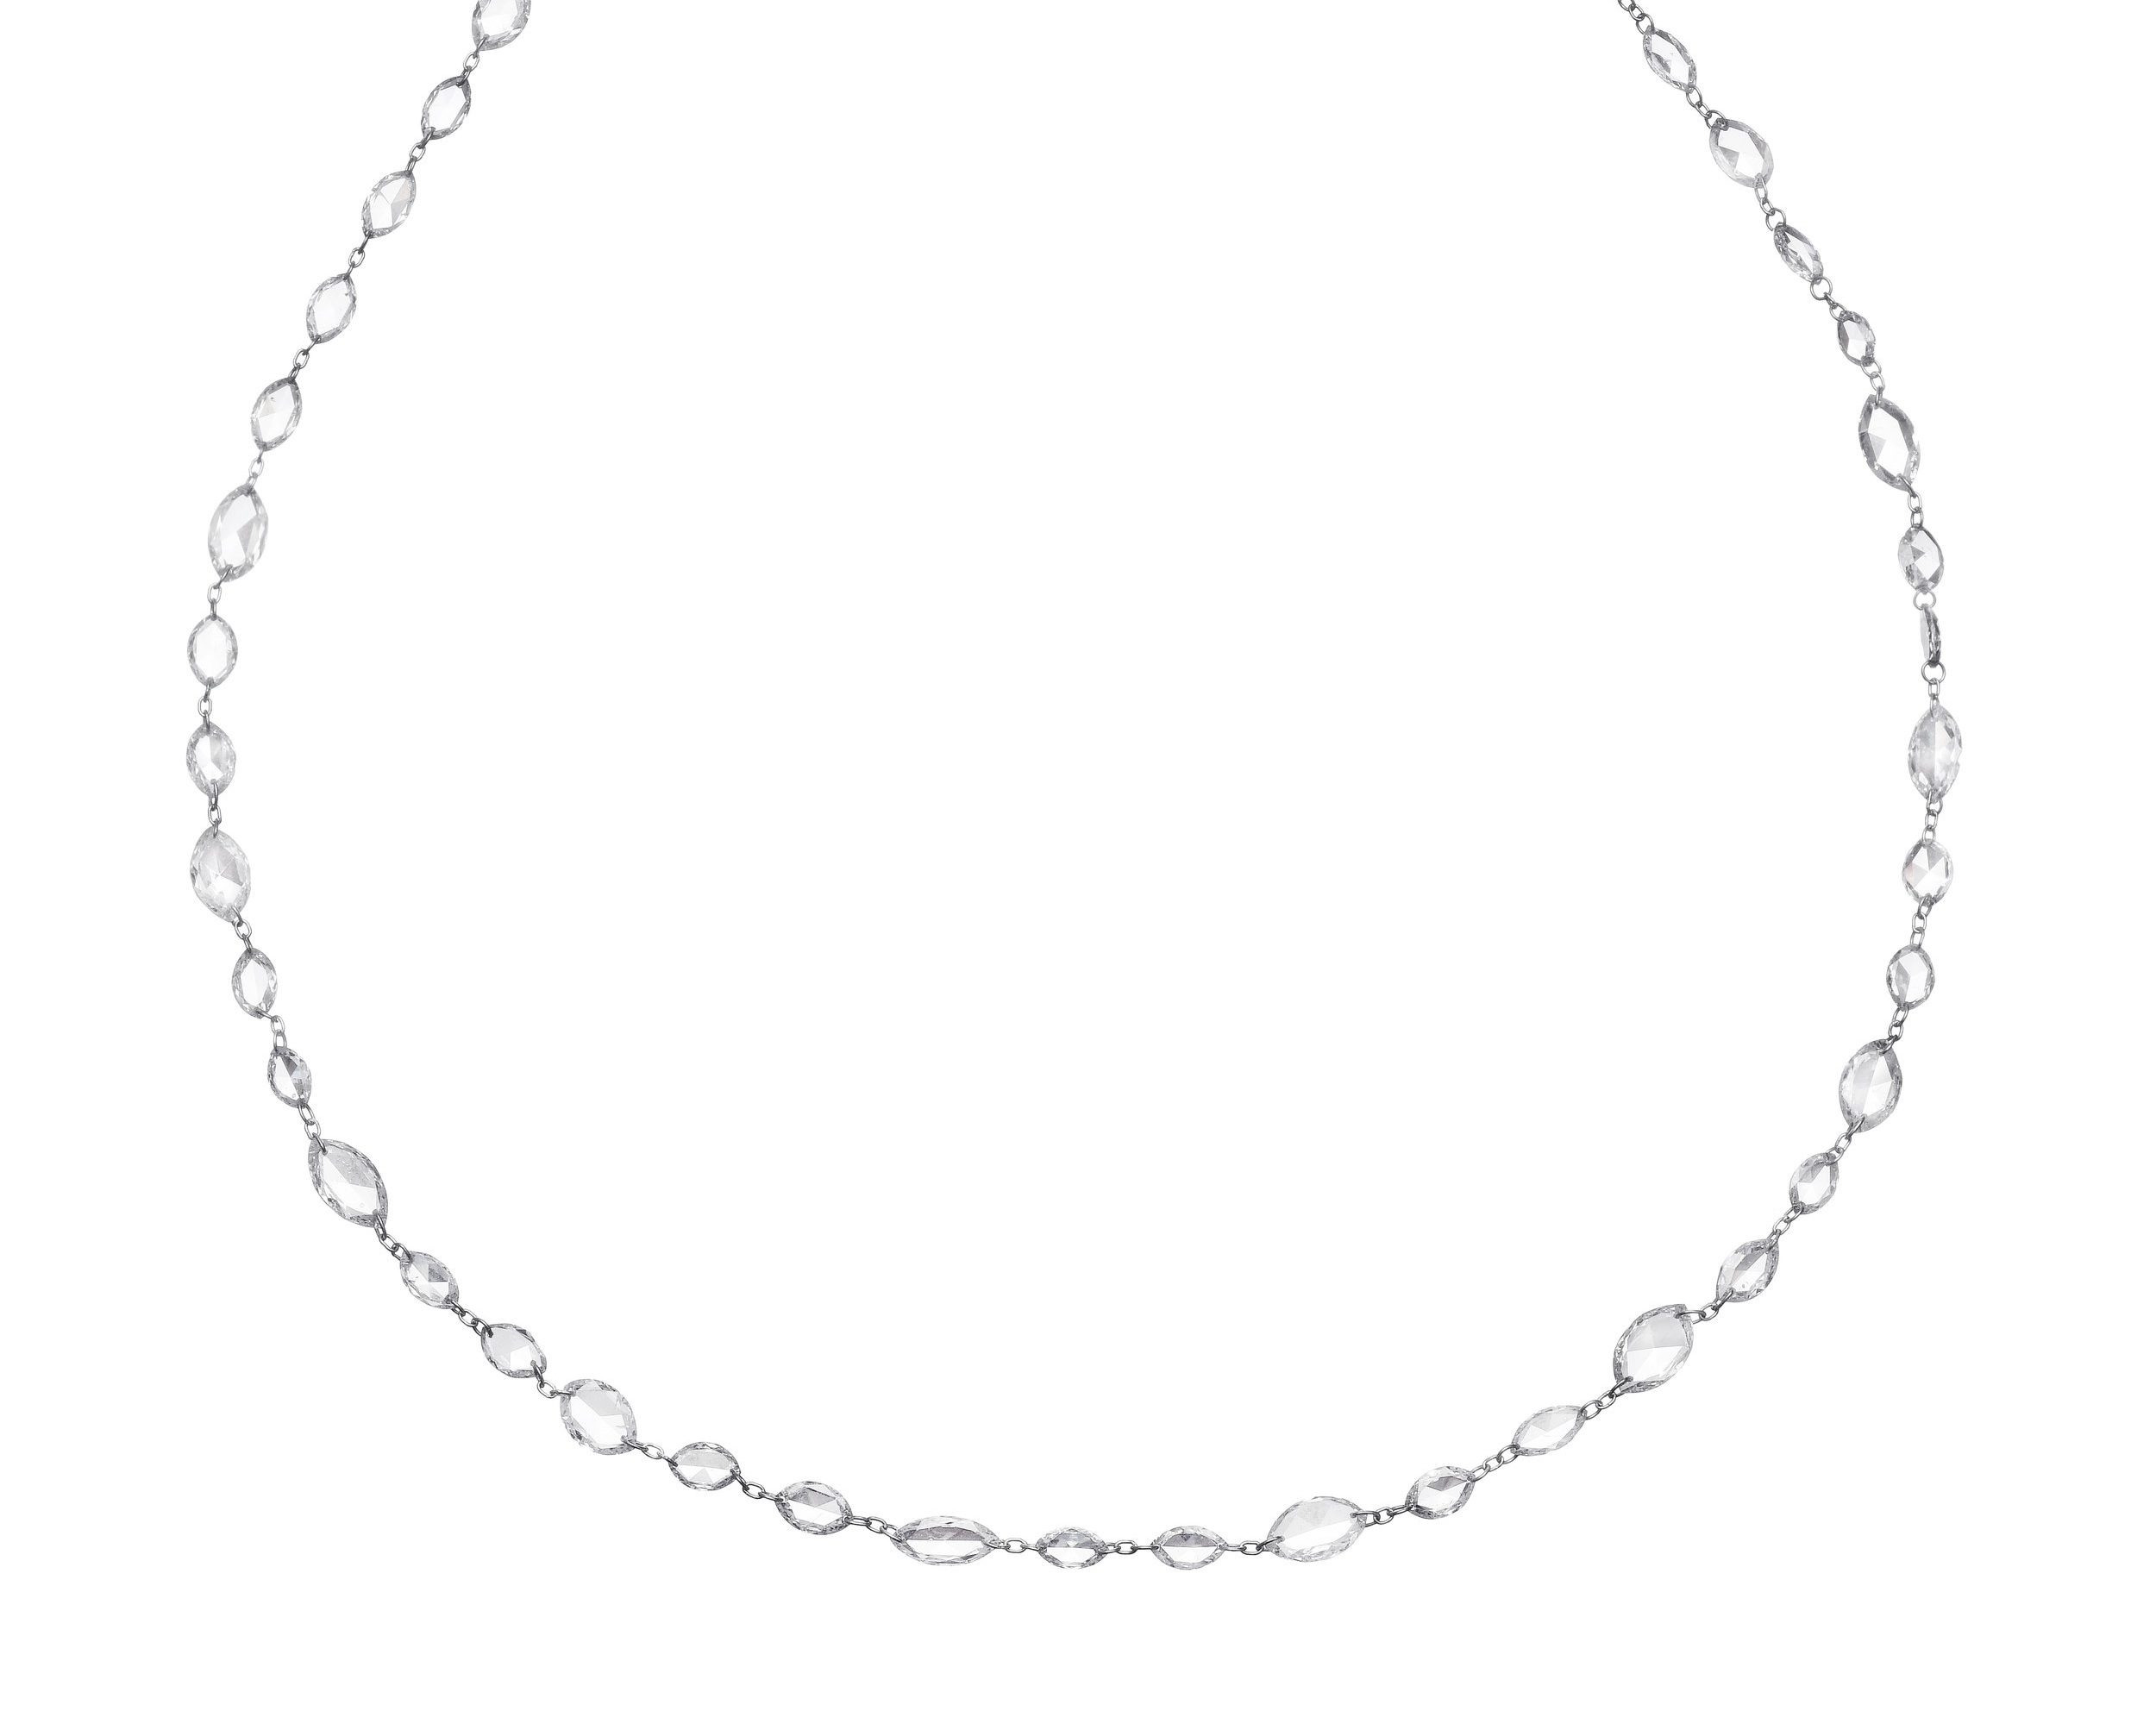 DIAMOND CHAIN - BY ITALIAN ARTISANS